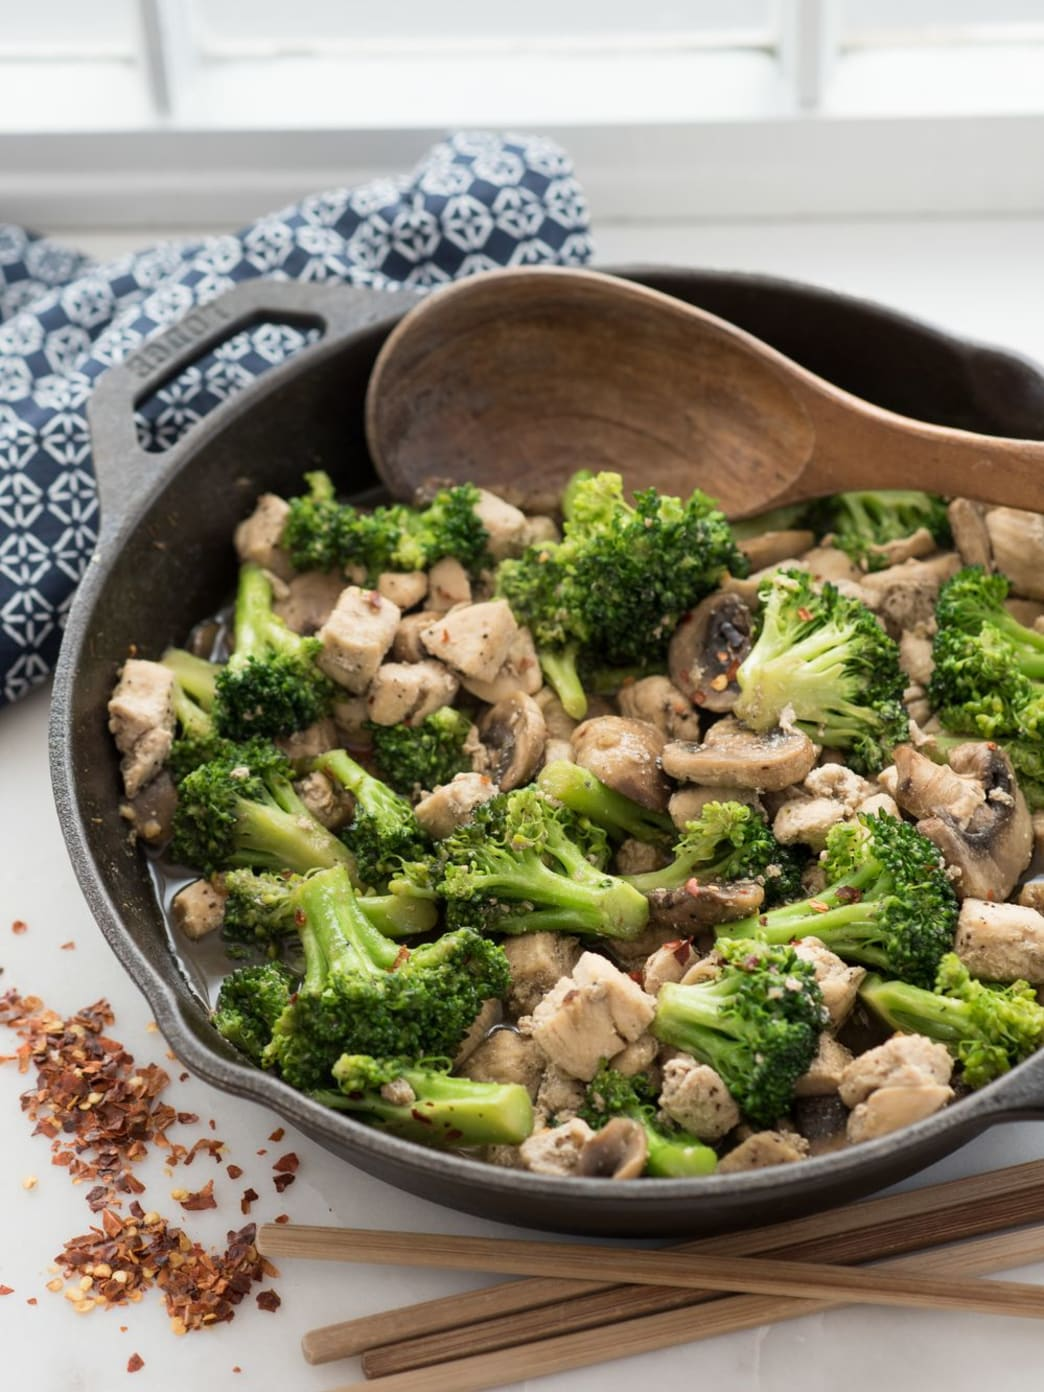 Chicken, Broccoli, Mushroom Stir-Fry